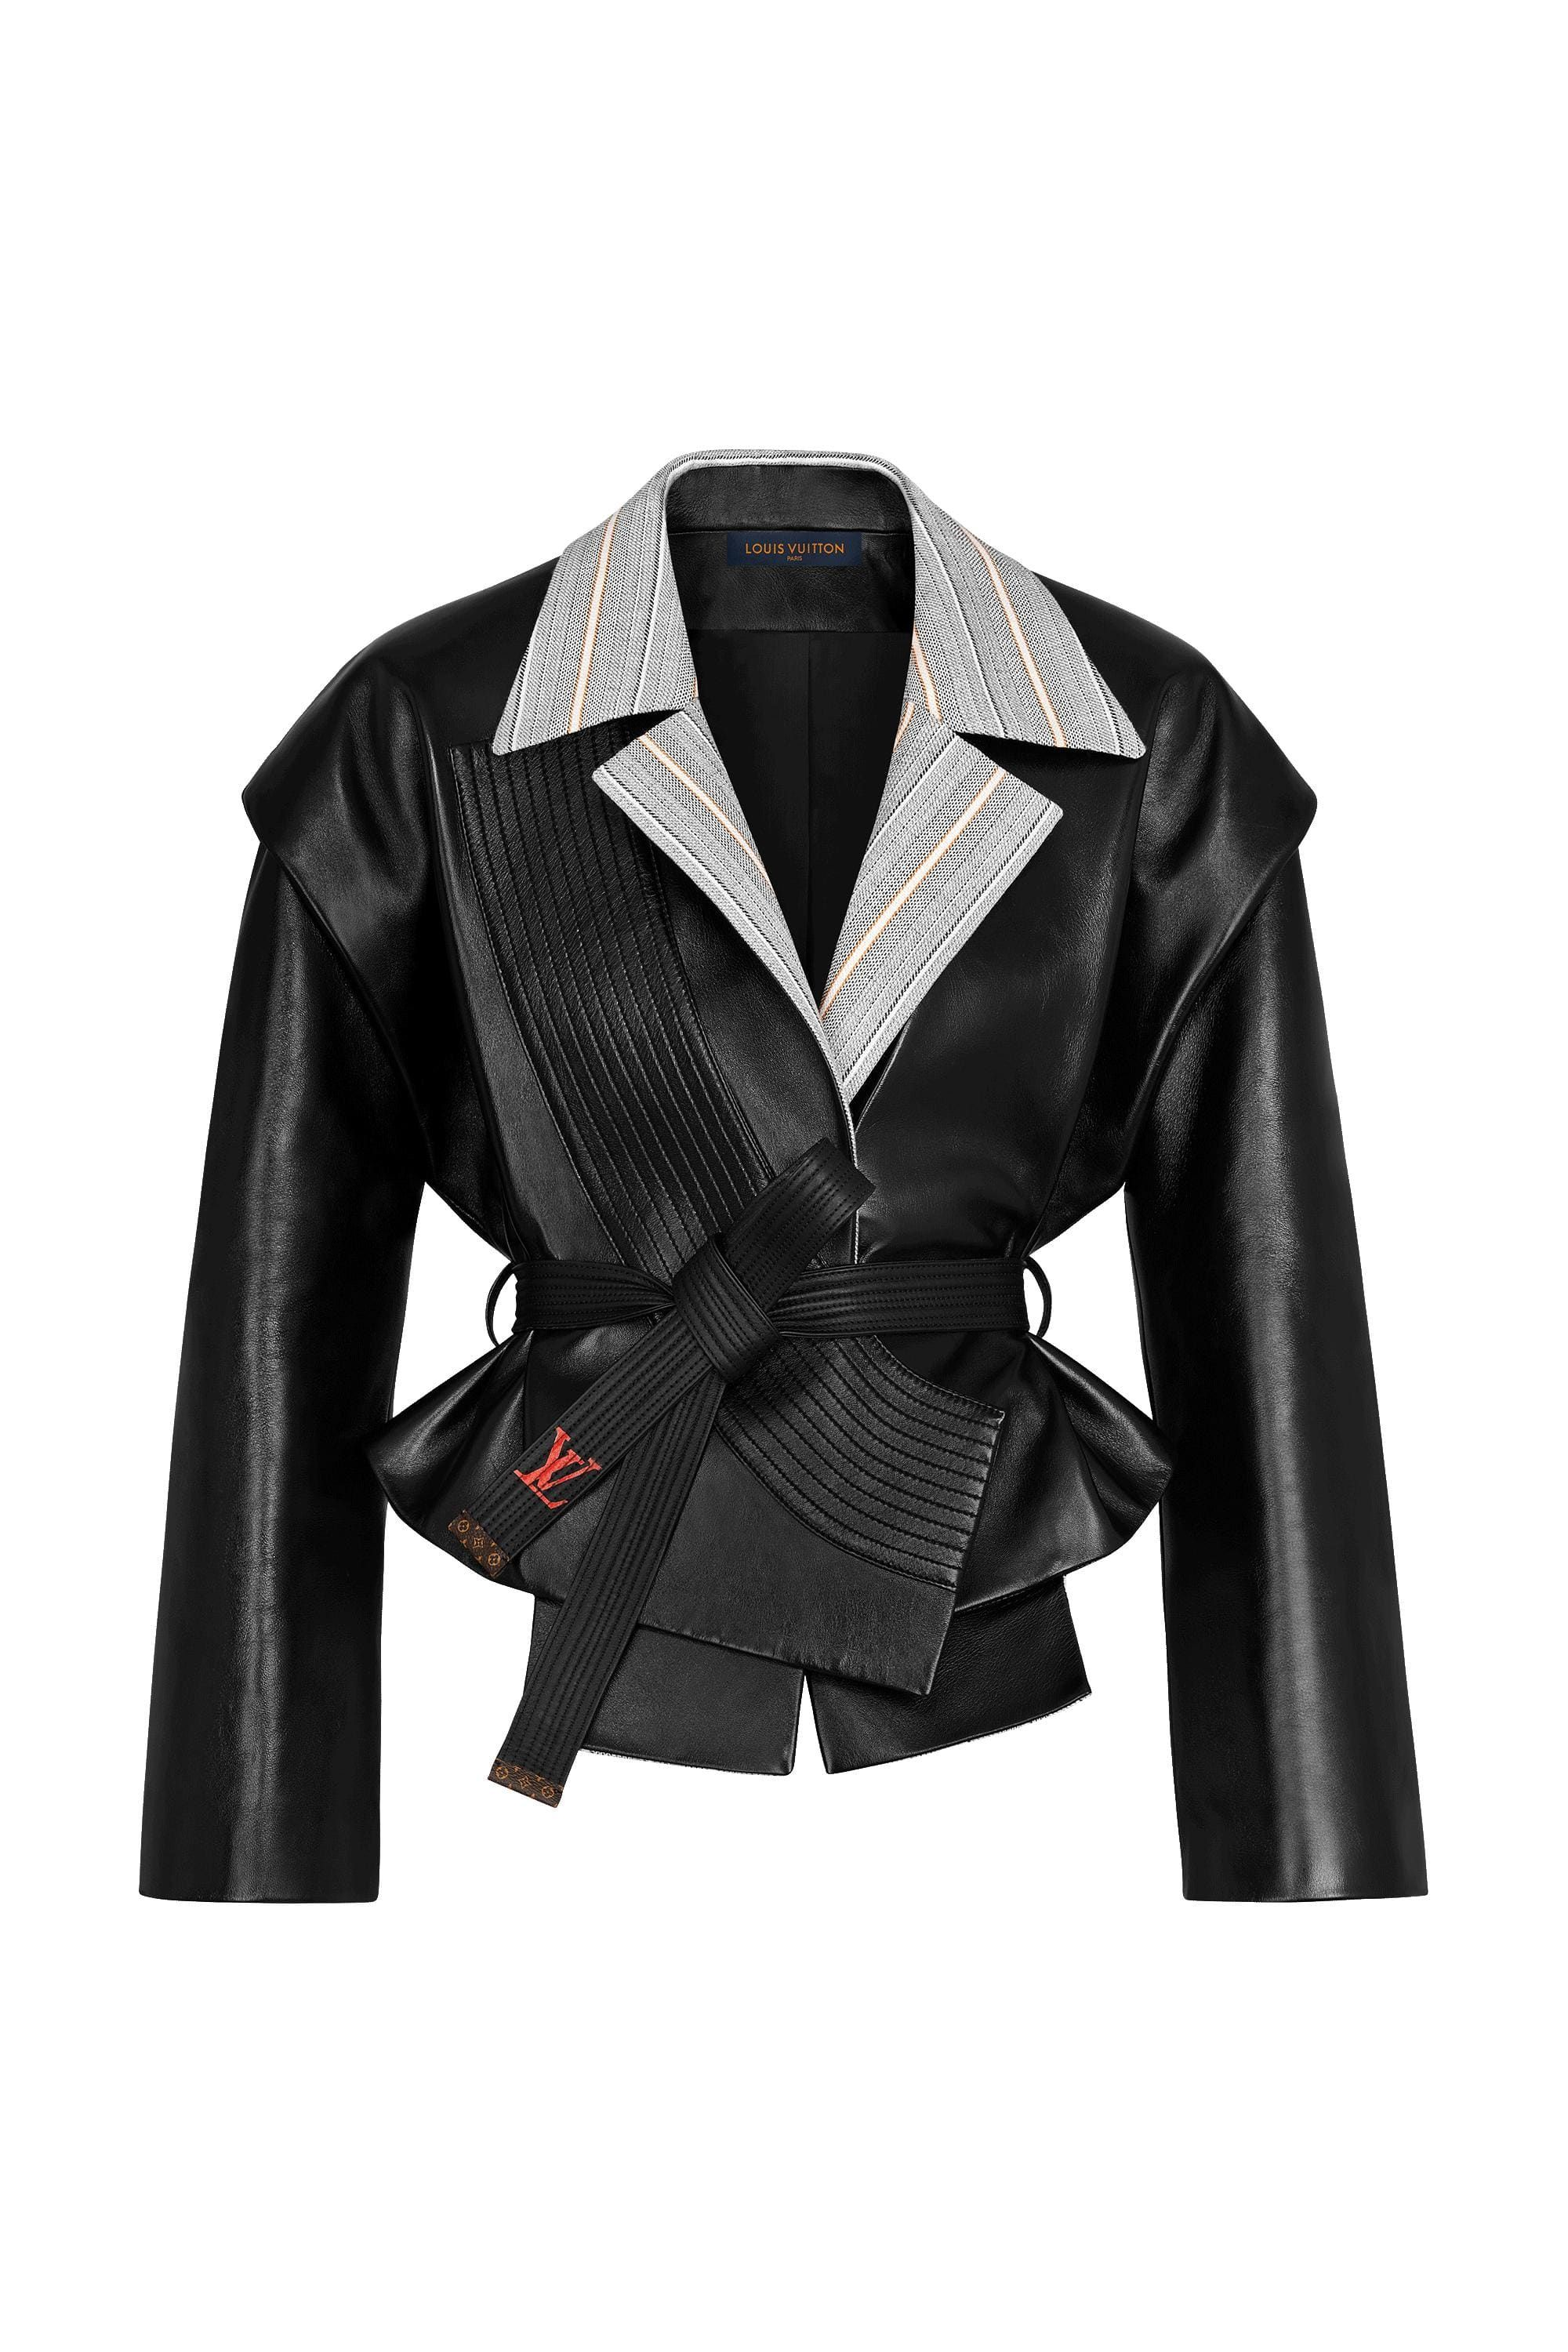 Belted Leather Jacket Via Louis Vuitton Leather Jacket Leather Jackets Women Fashion [ jpg ]